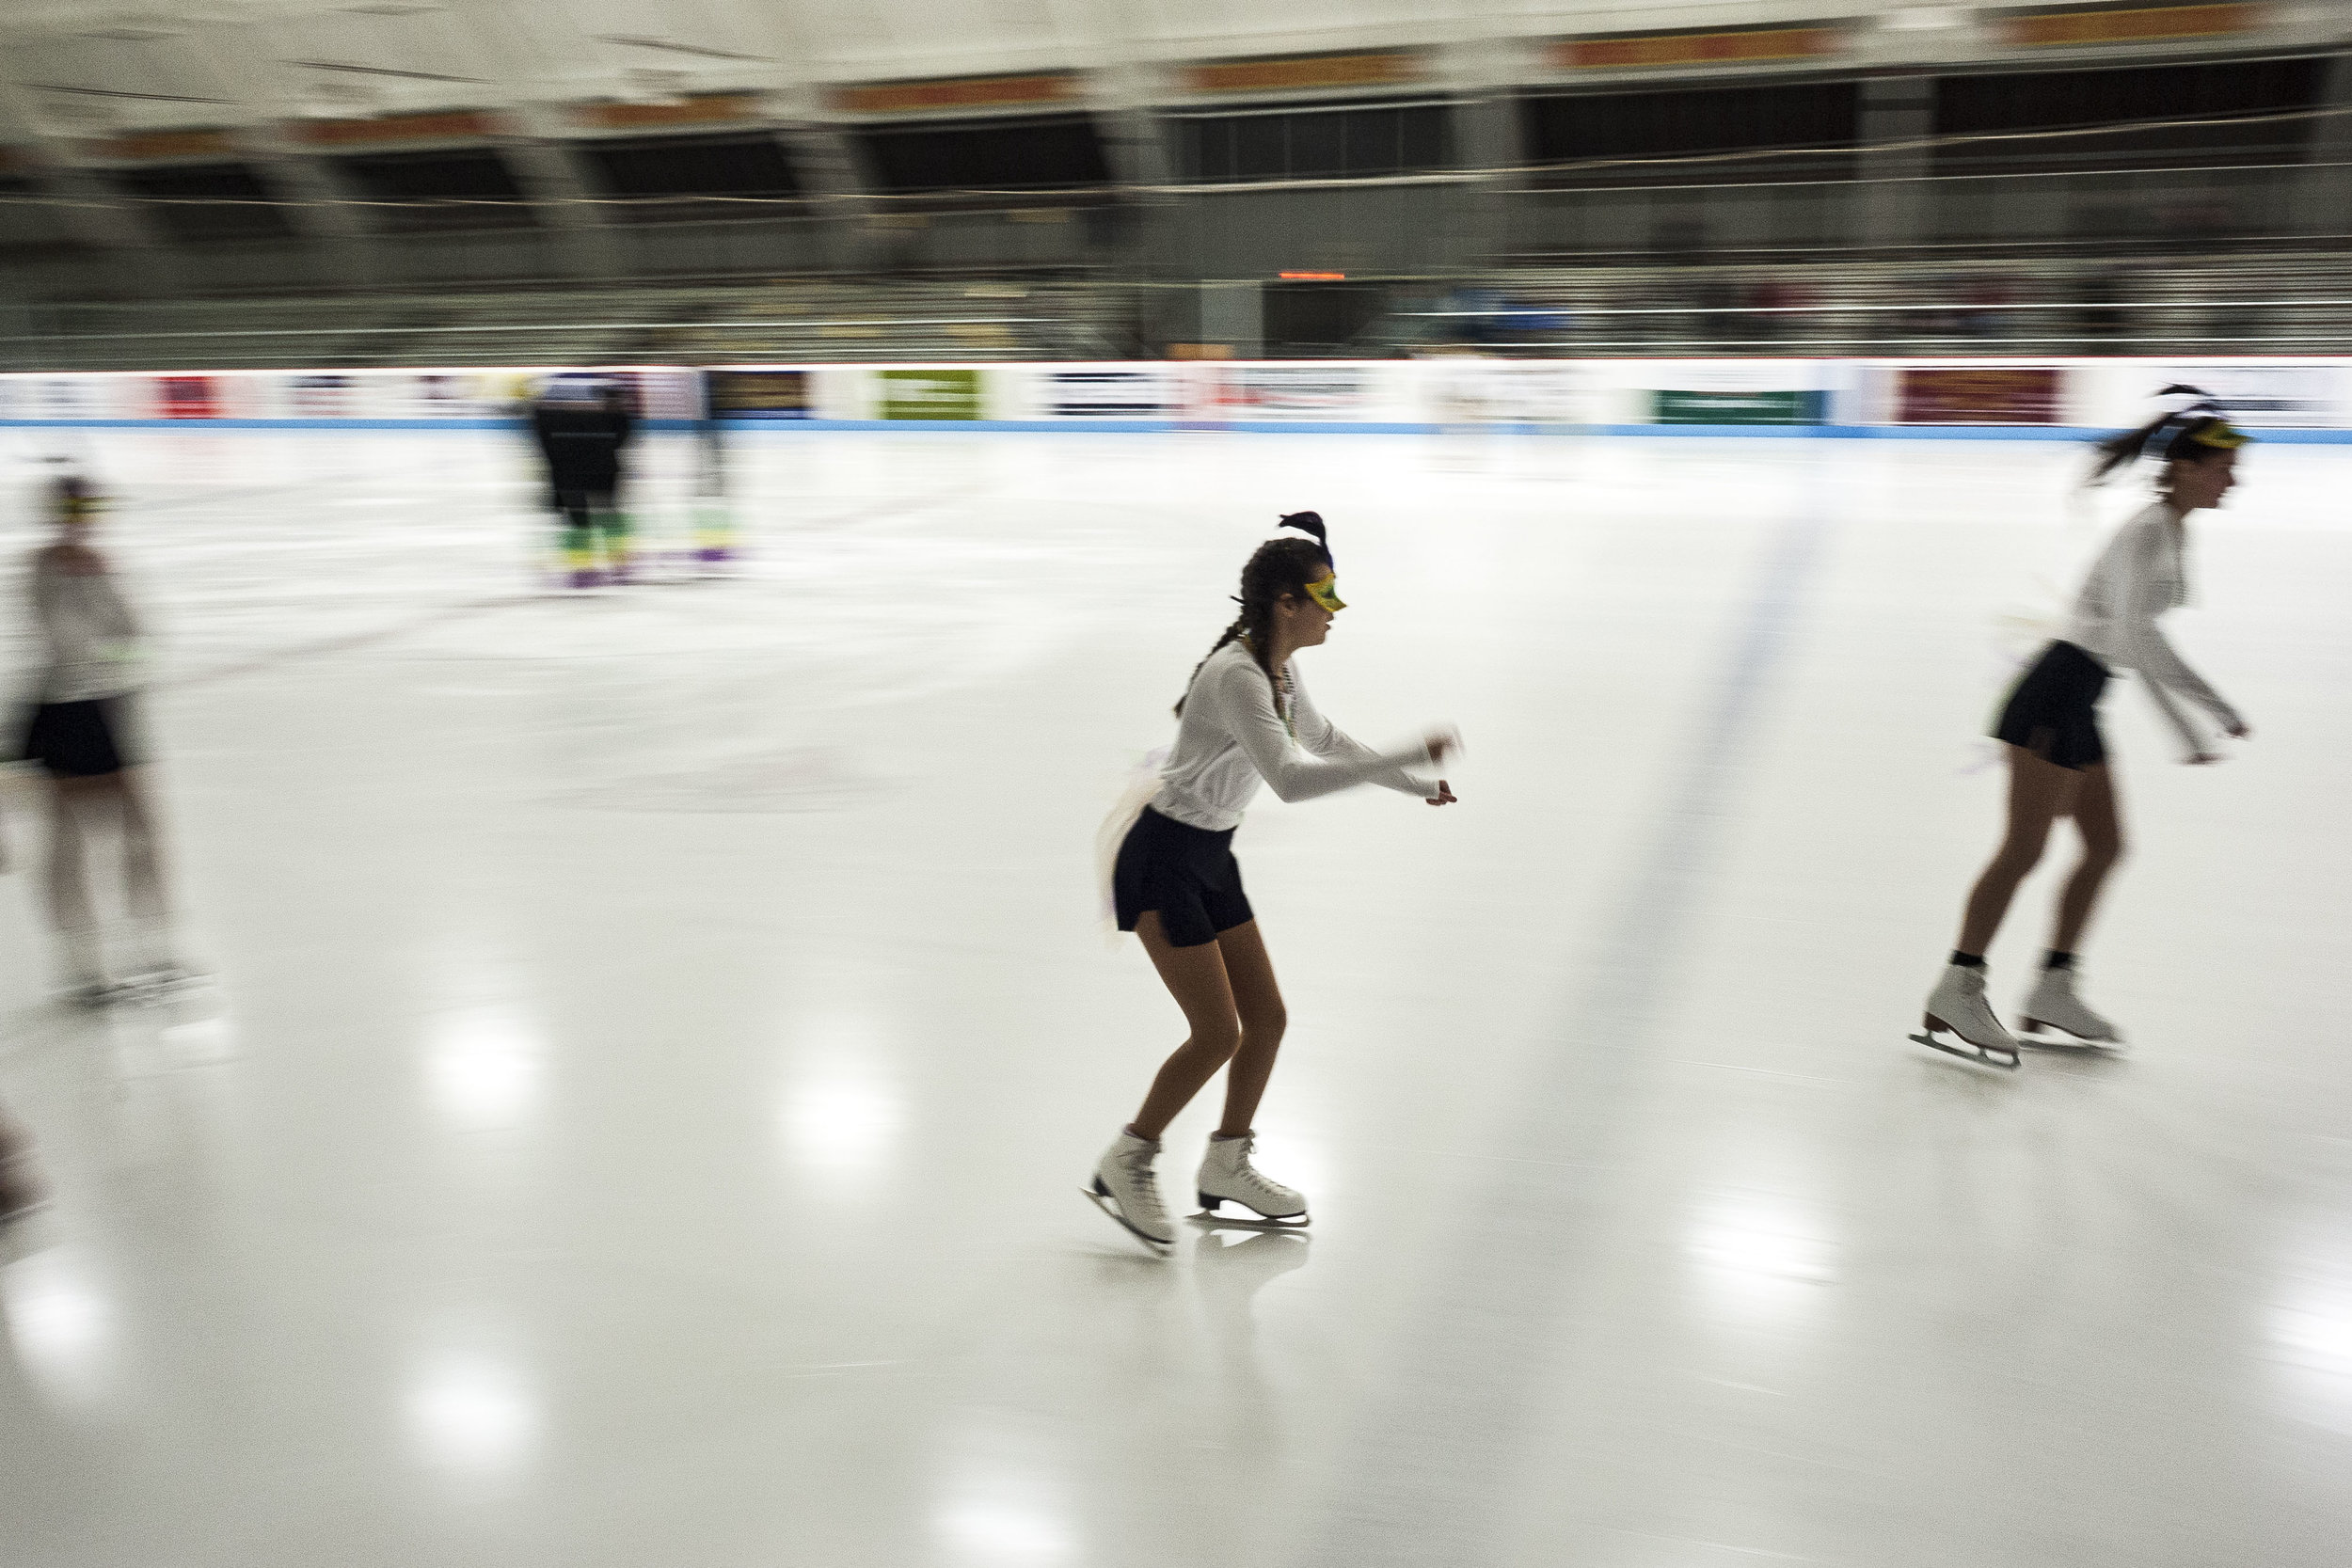 The Barre Figure Skating Club holds a dress rehearsal for their annual show at the B.O.R Ice Arena on Sunday, February 11th 2018.